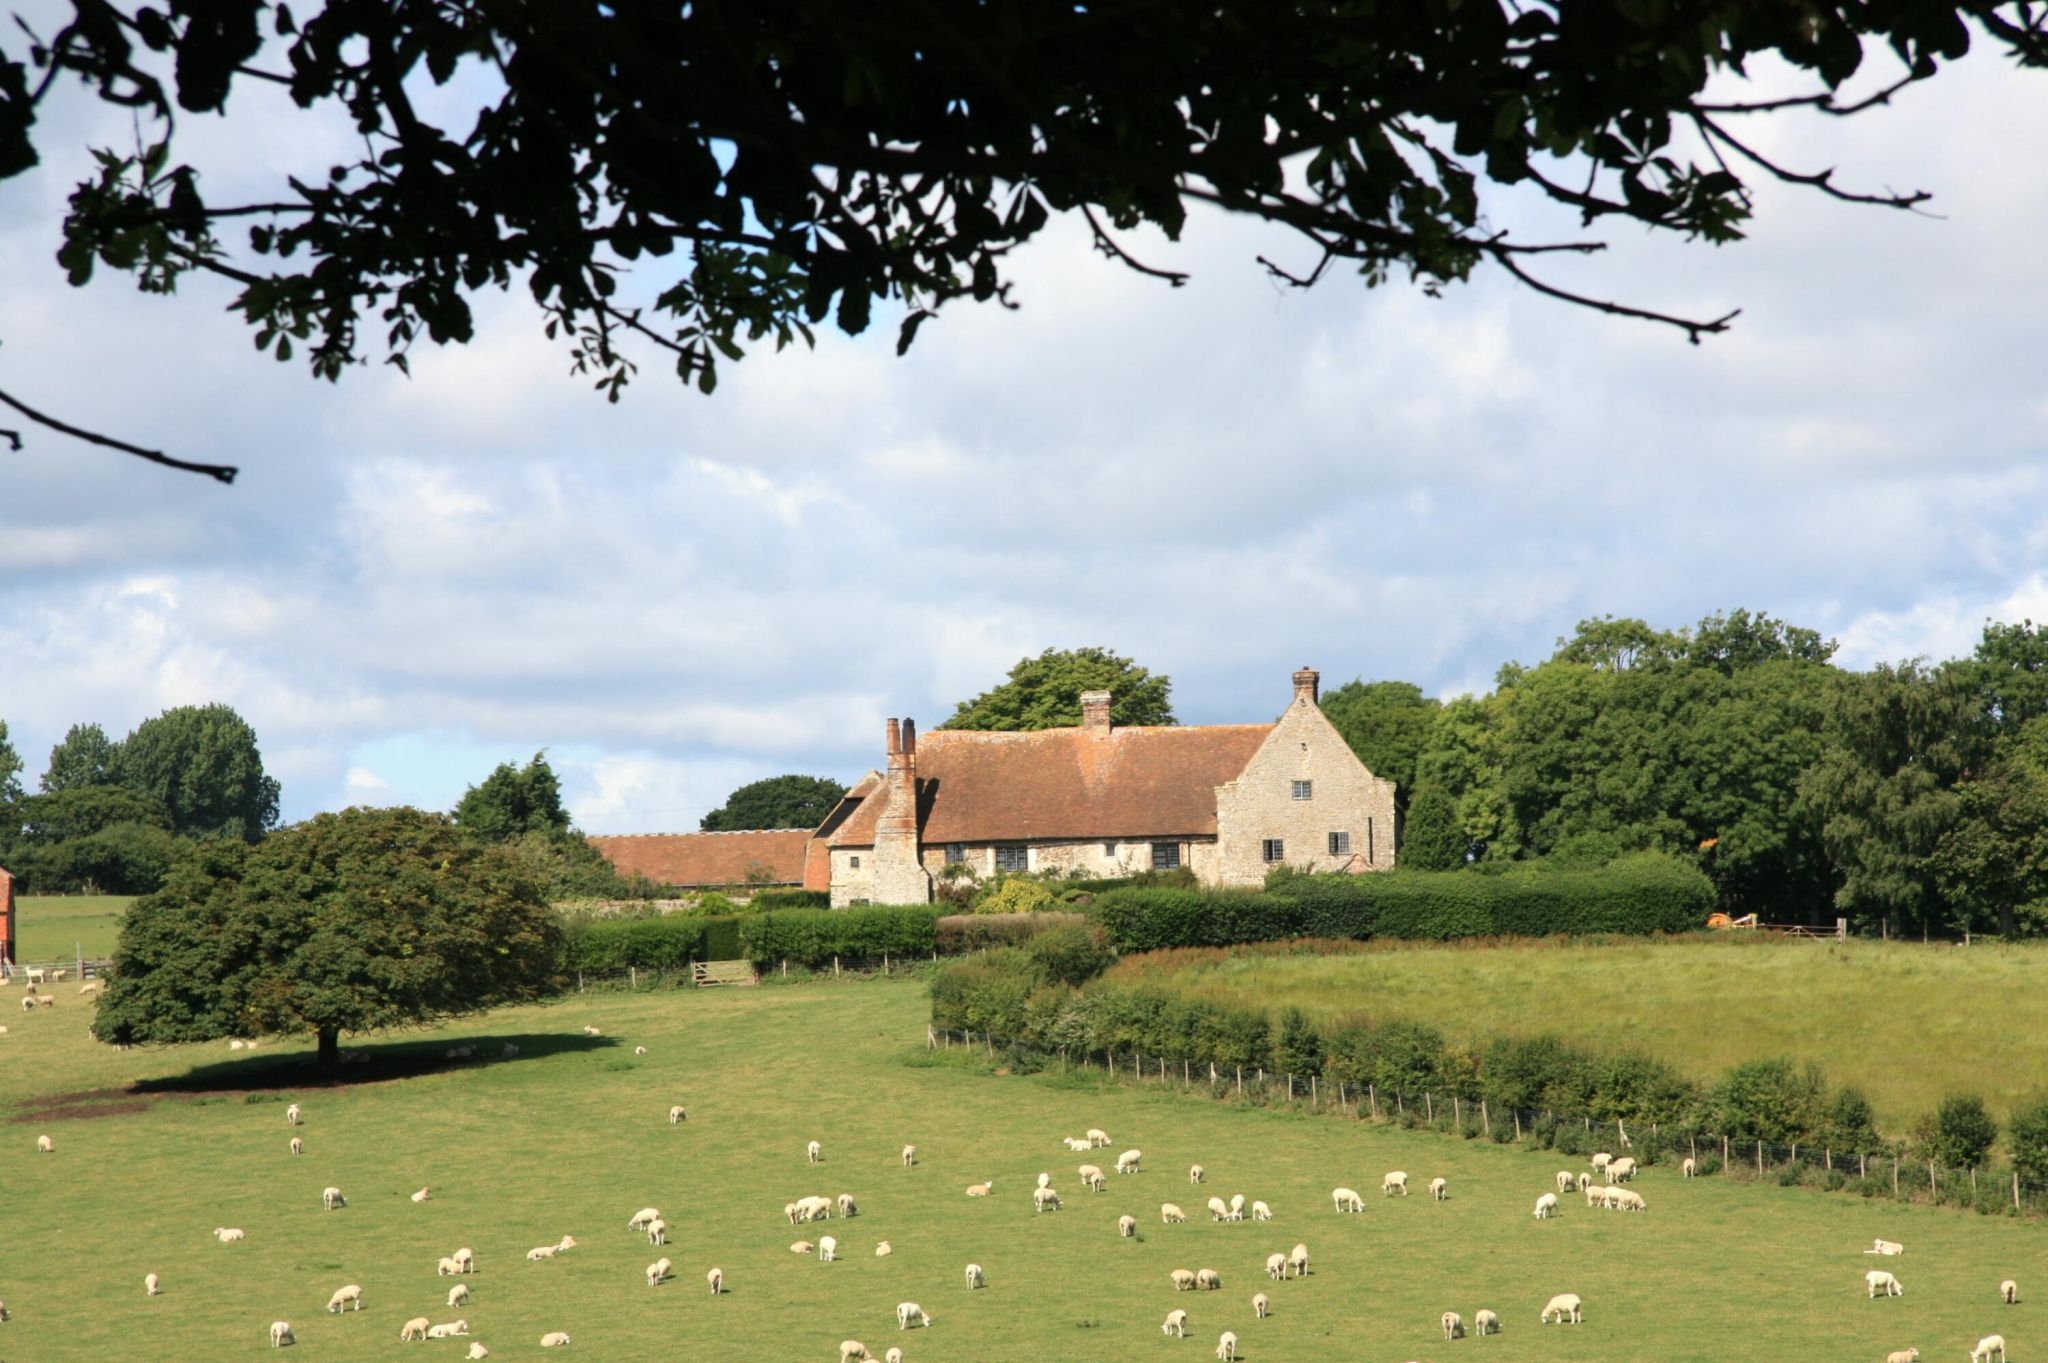 Wickham Manor Farm, Winchelsea, United Kingdom